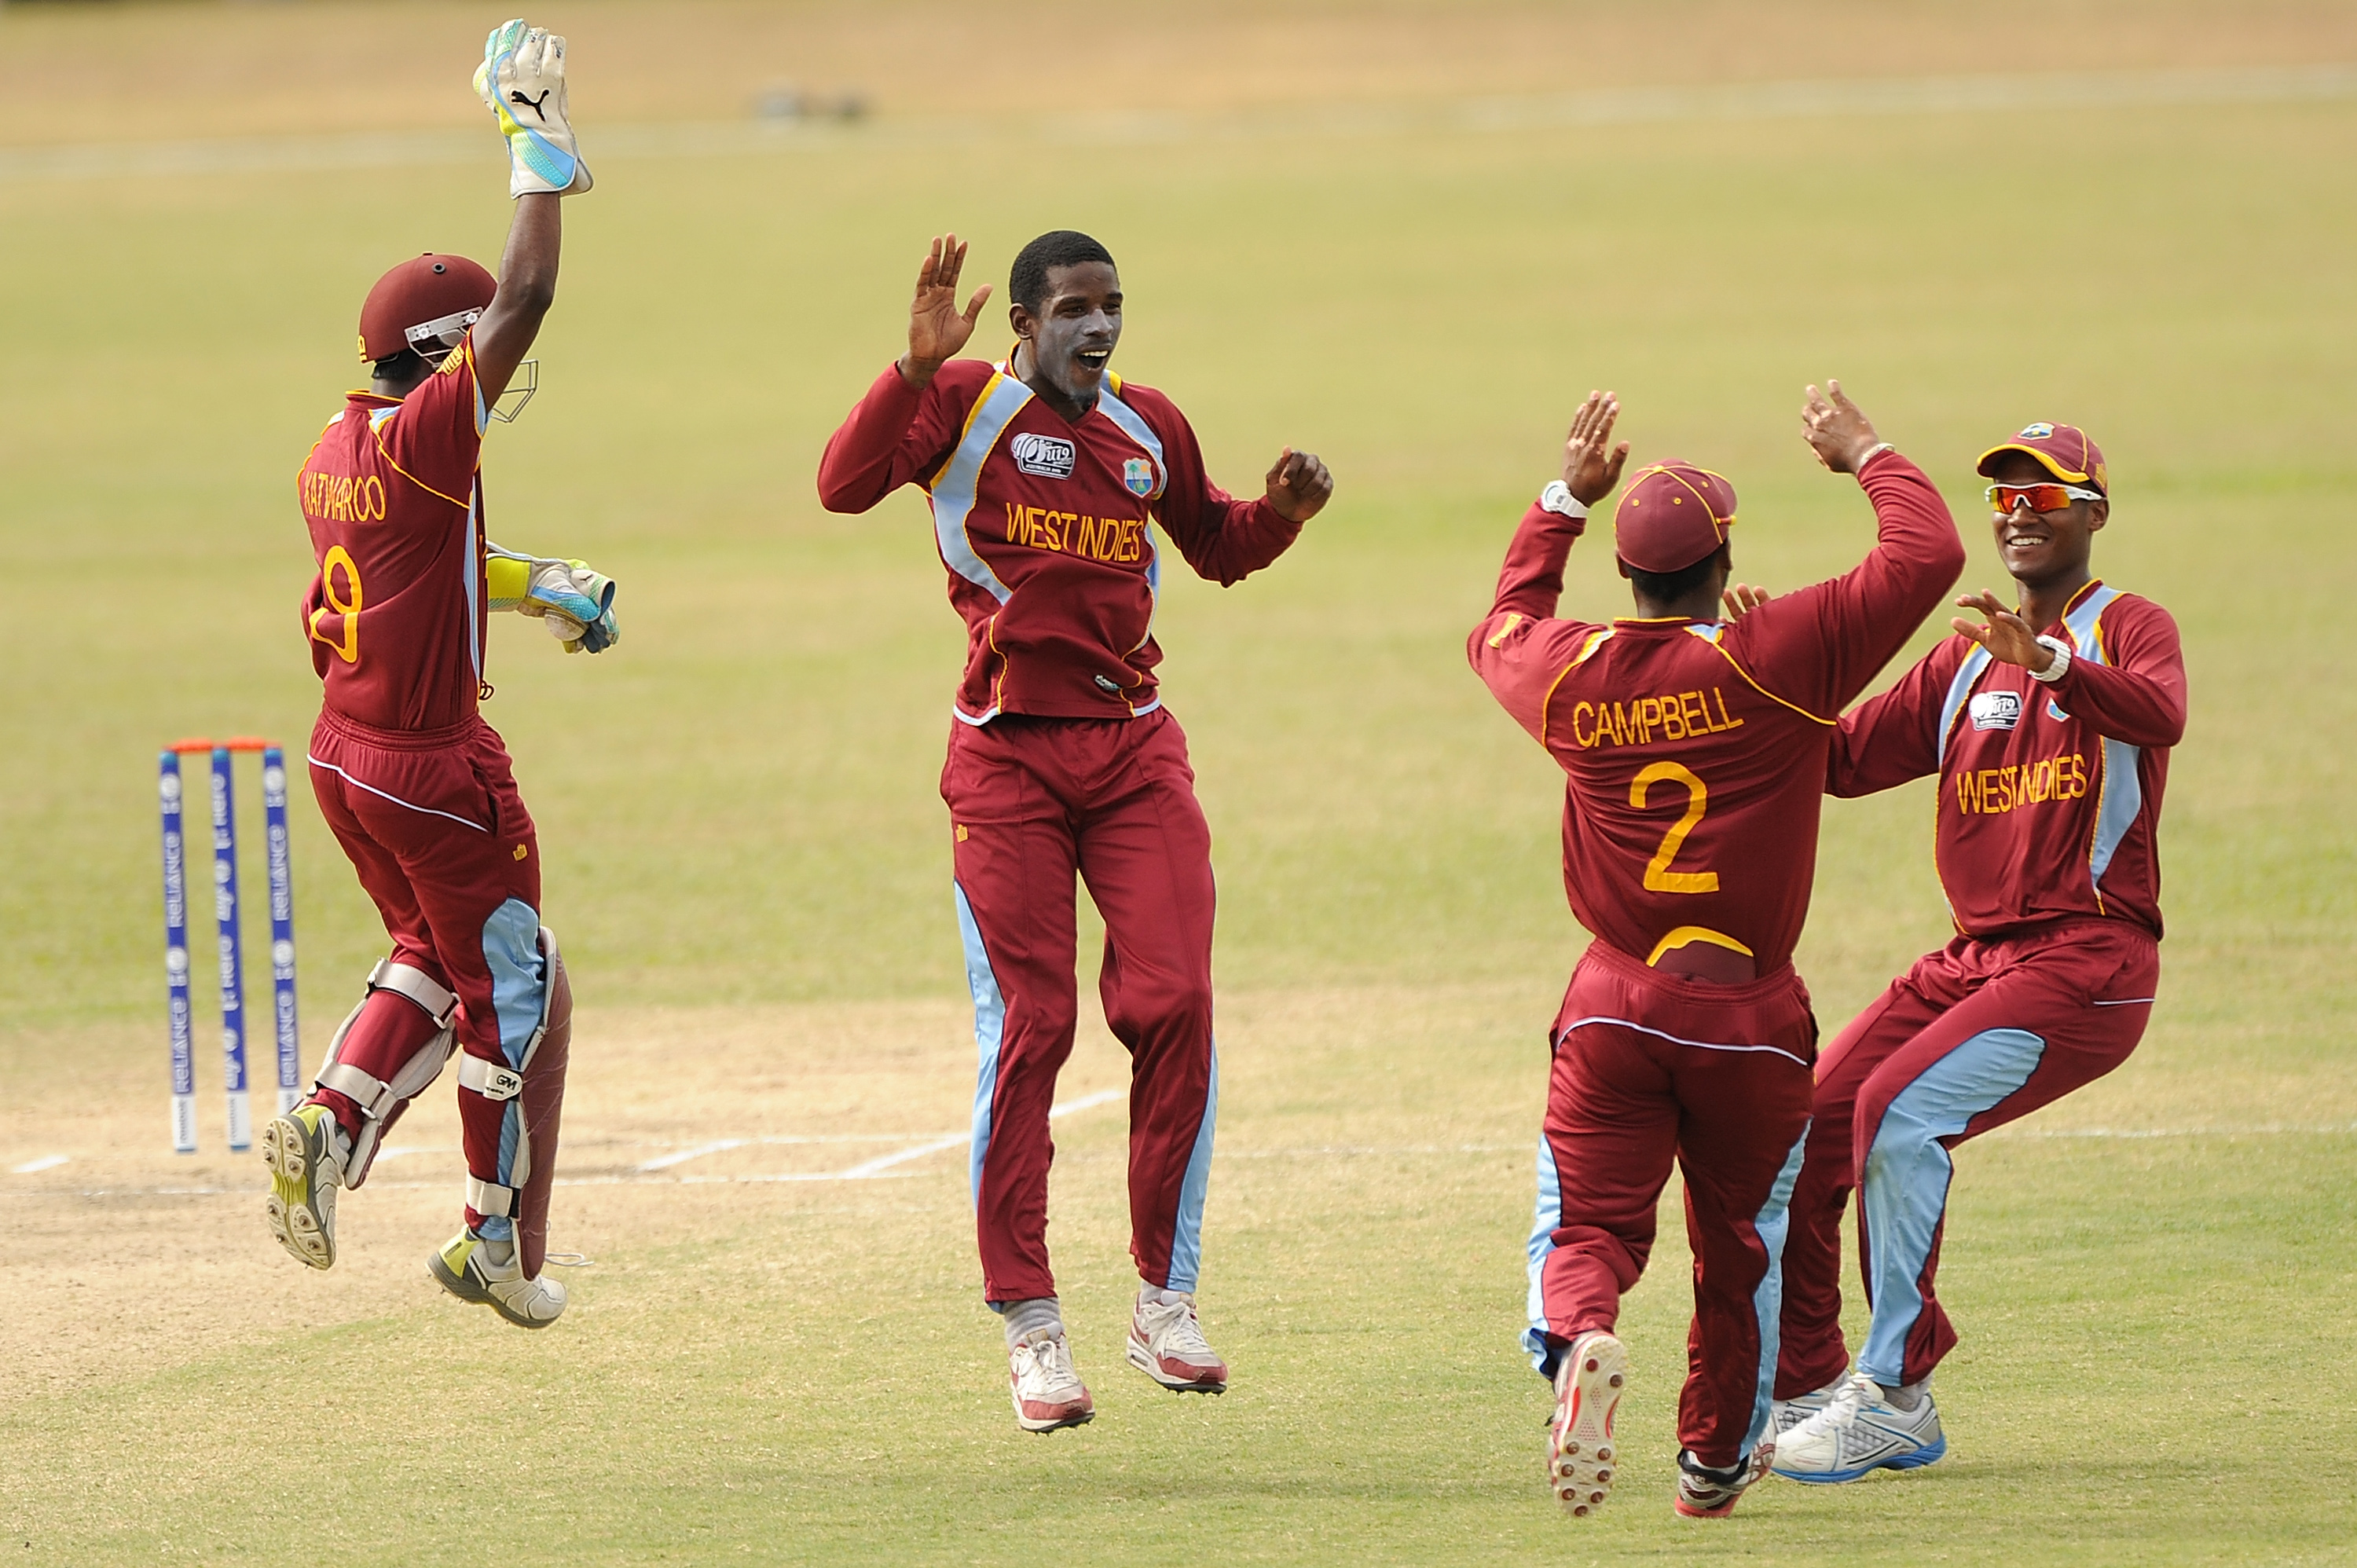 West Indies to meet England in fifth-sixth